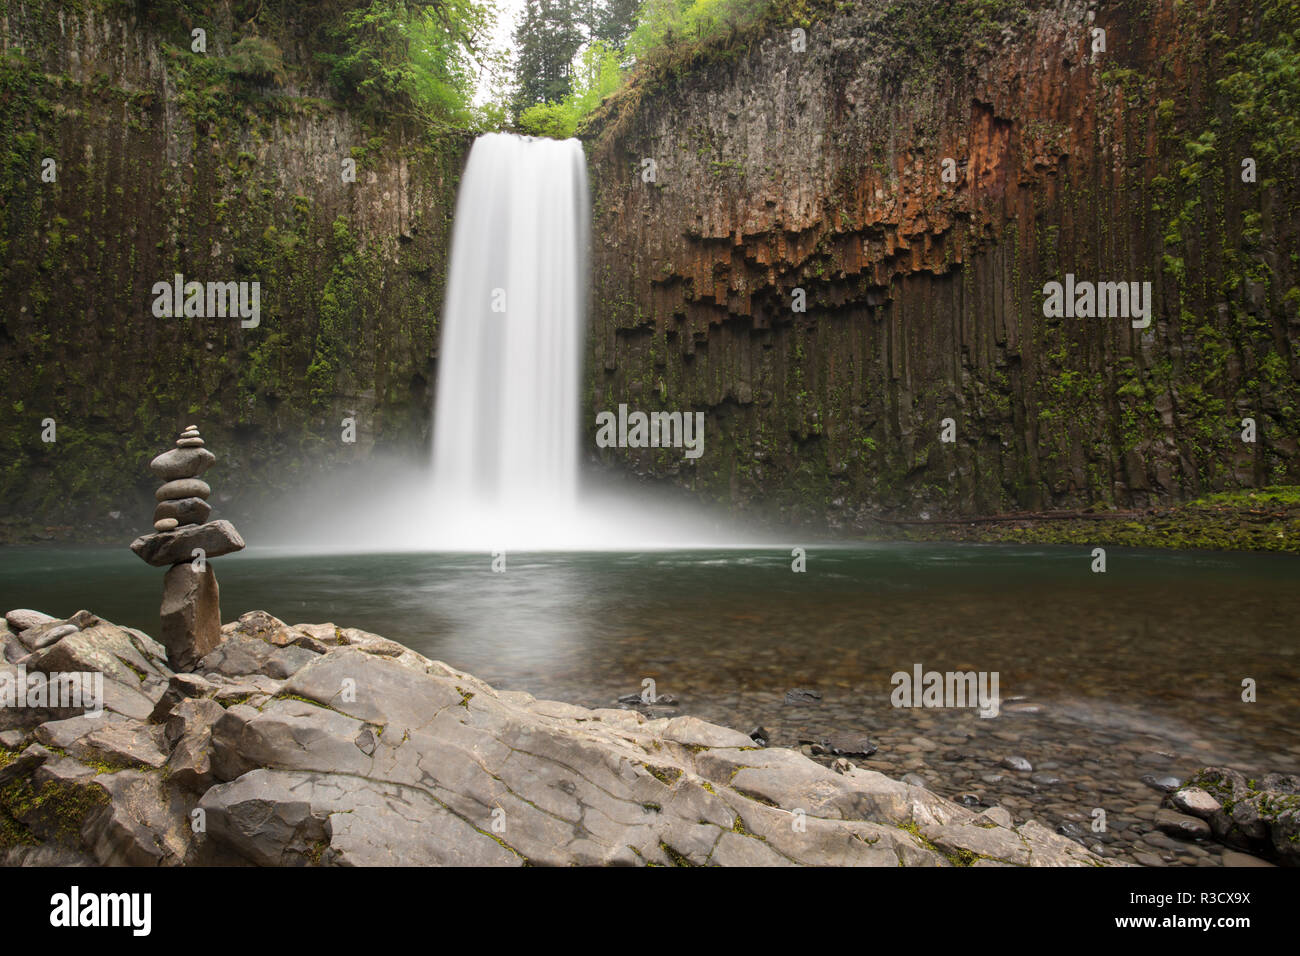 USA, Oregon, Abiqua Falls. Waterfall over cliff of columnar basalt and rock stack. - Stock Image